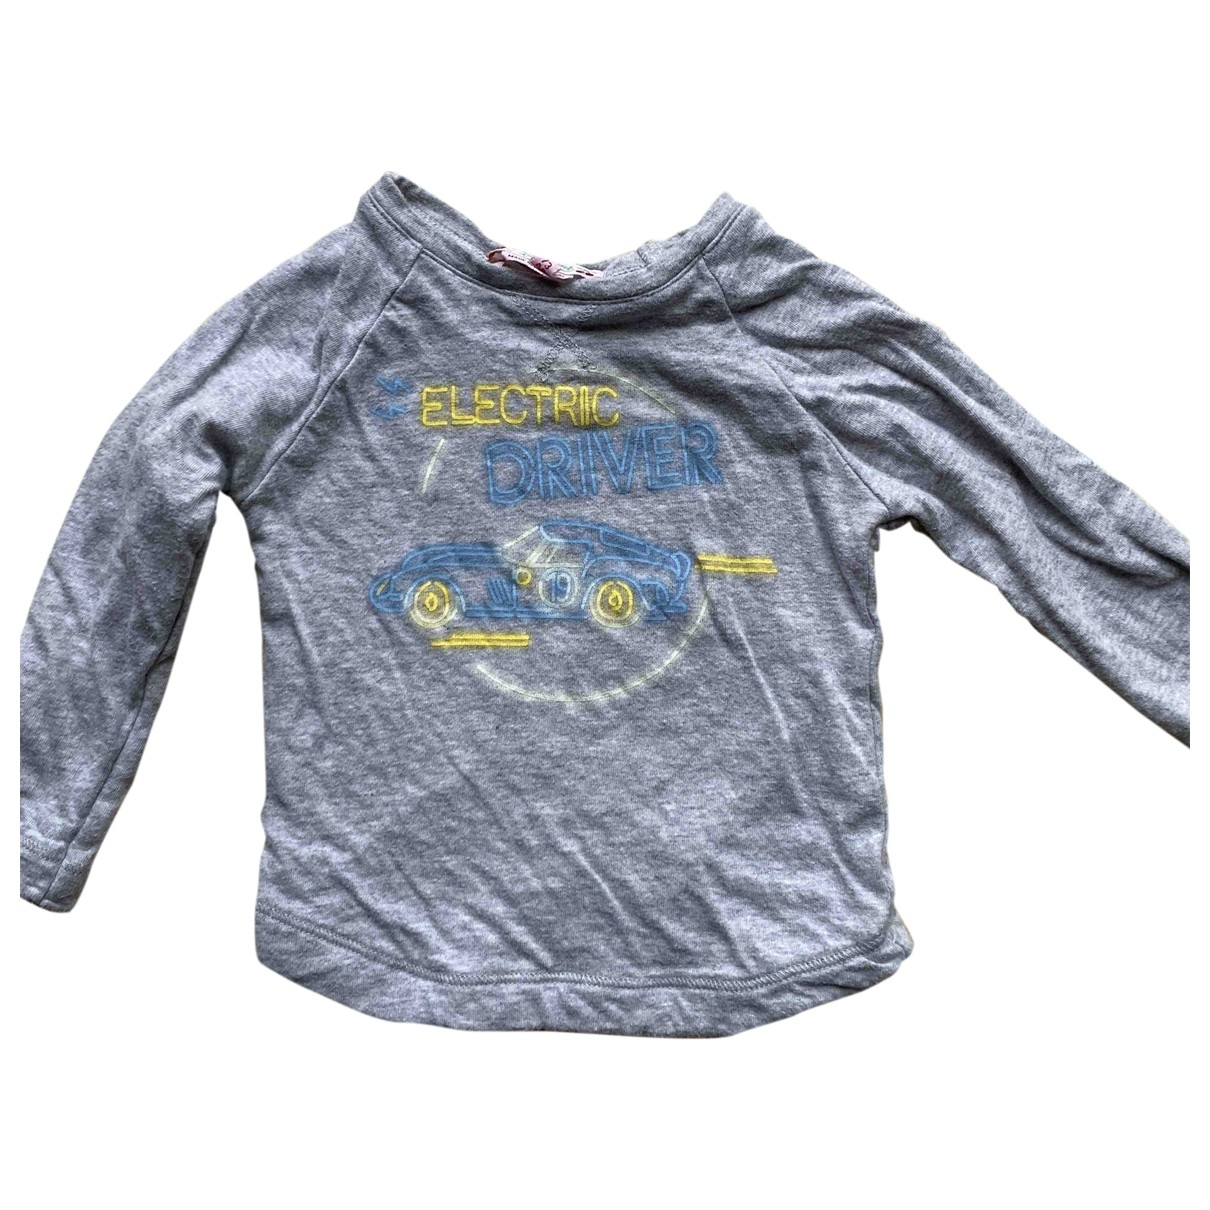 Bonpoint \N Grey Cotton  top for Kids 12 months - up to 74cm FR